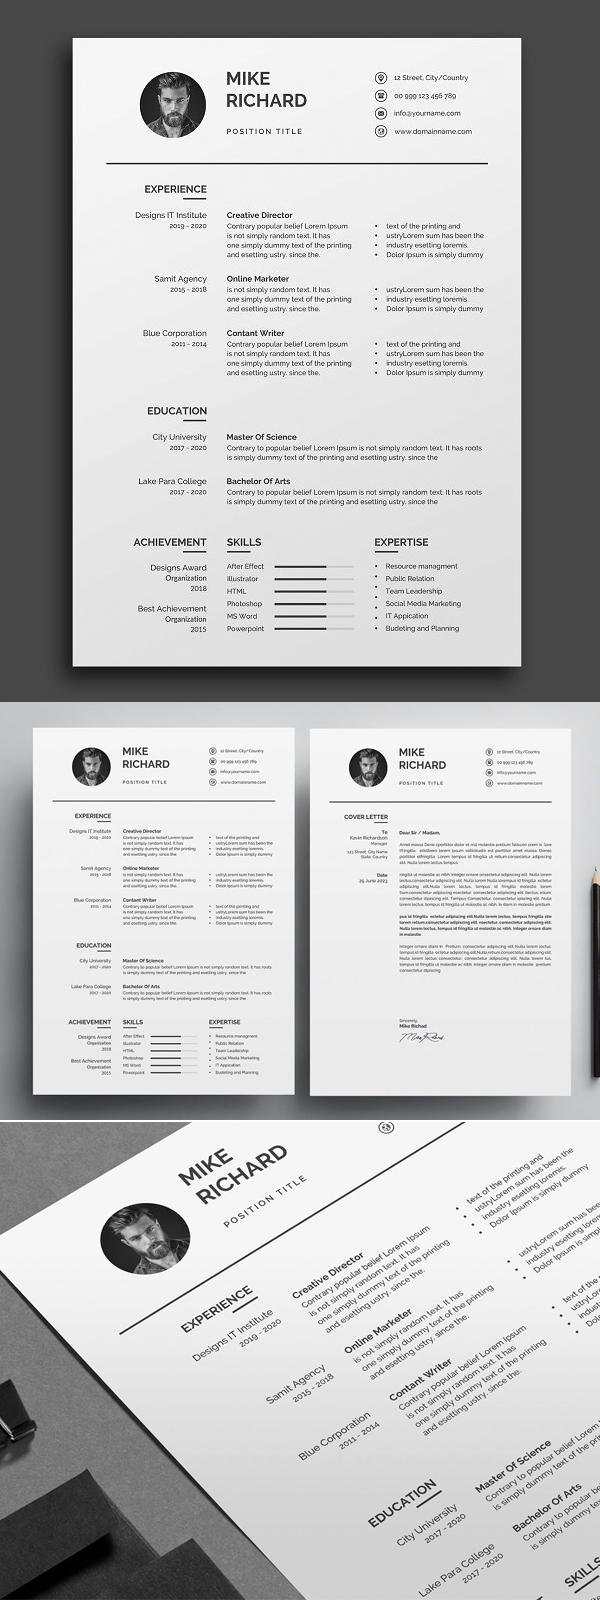 50 Best Resume Templates Of 2020 - 26